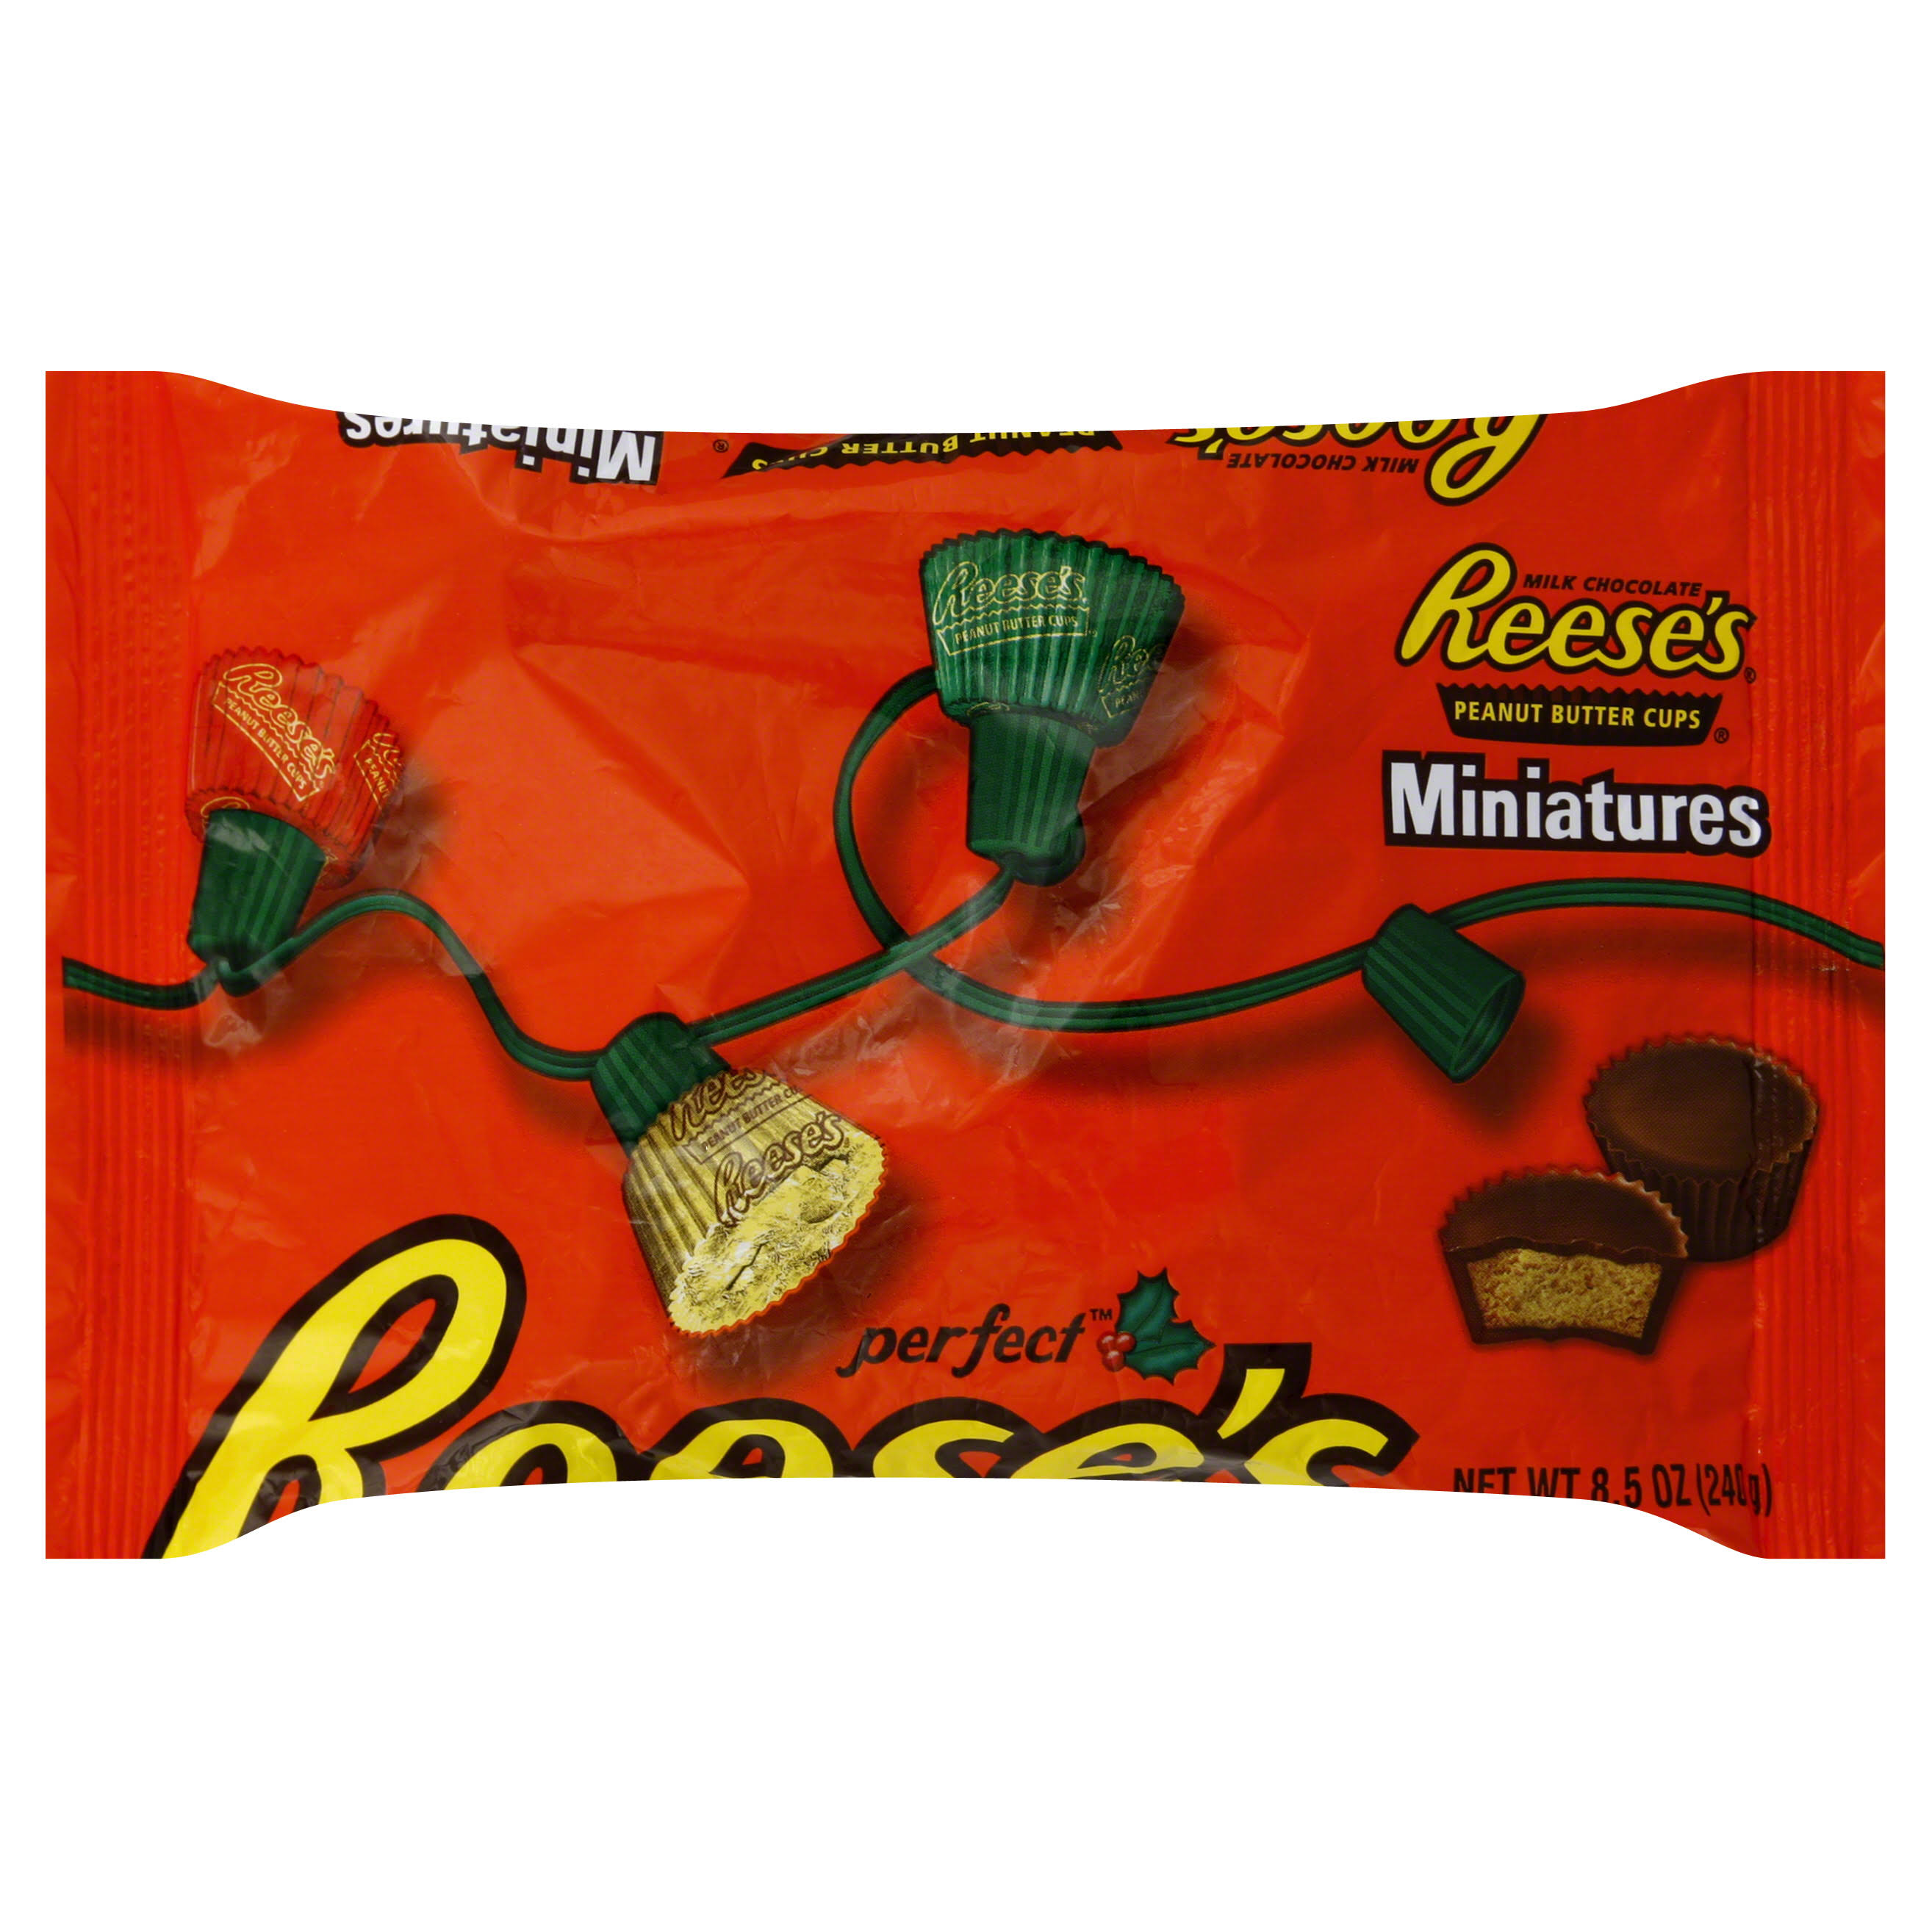 Reese's Holiday Peanut Butter Cups - 8.5oz, 4pk